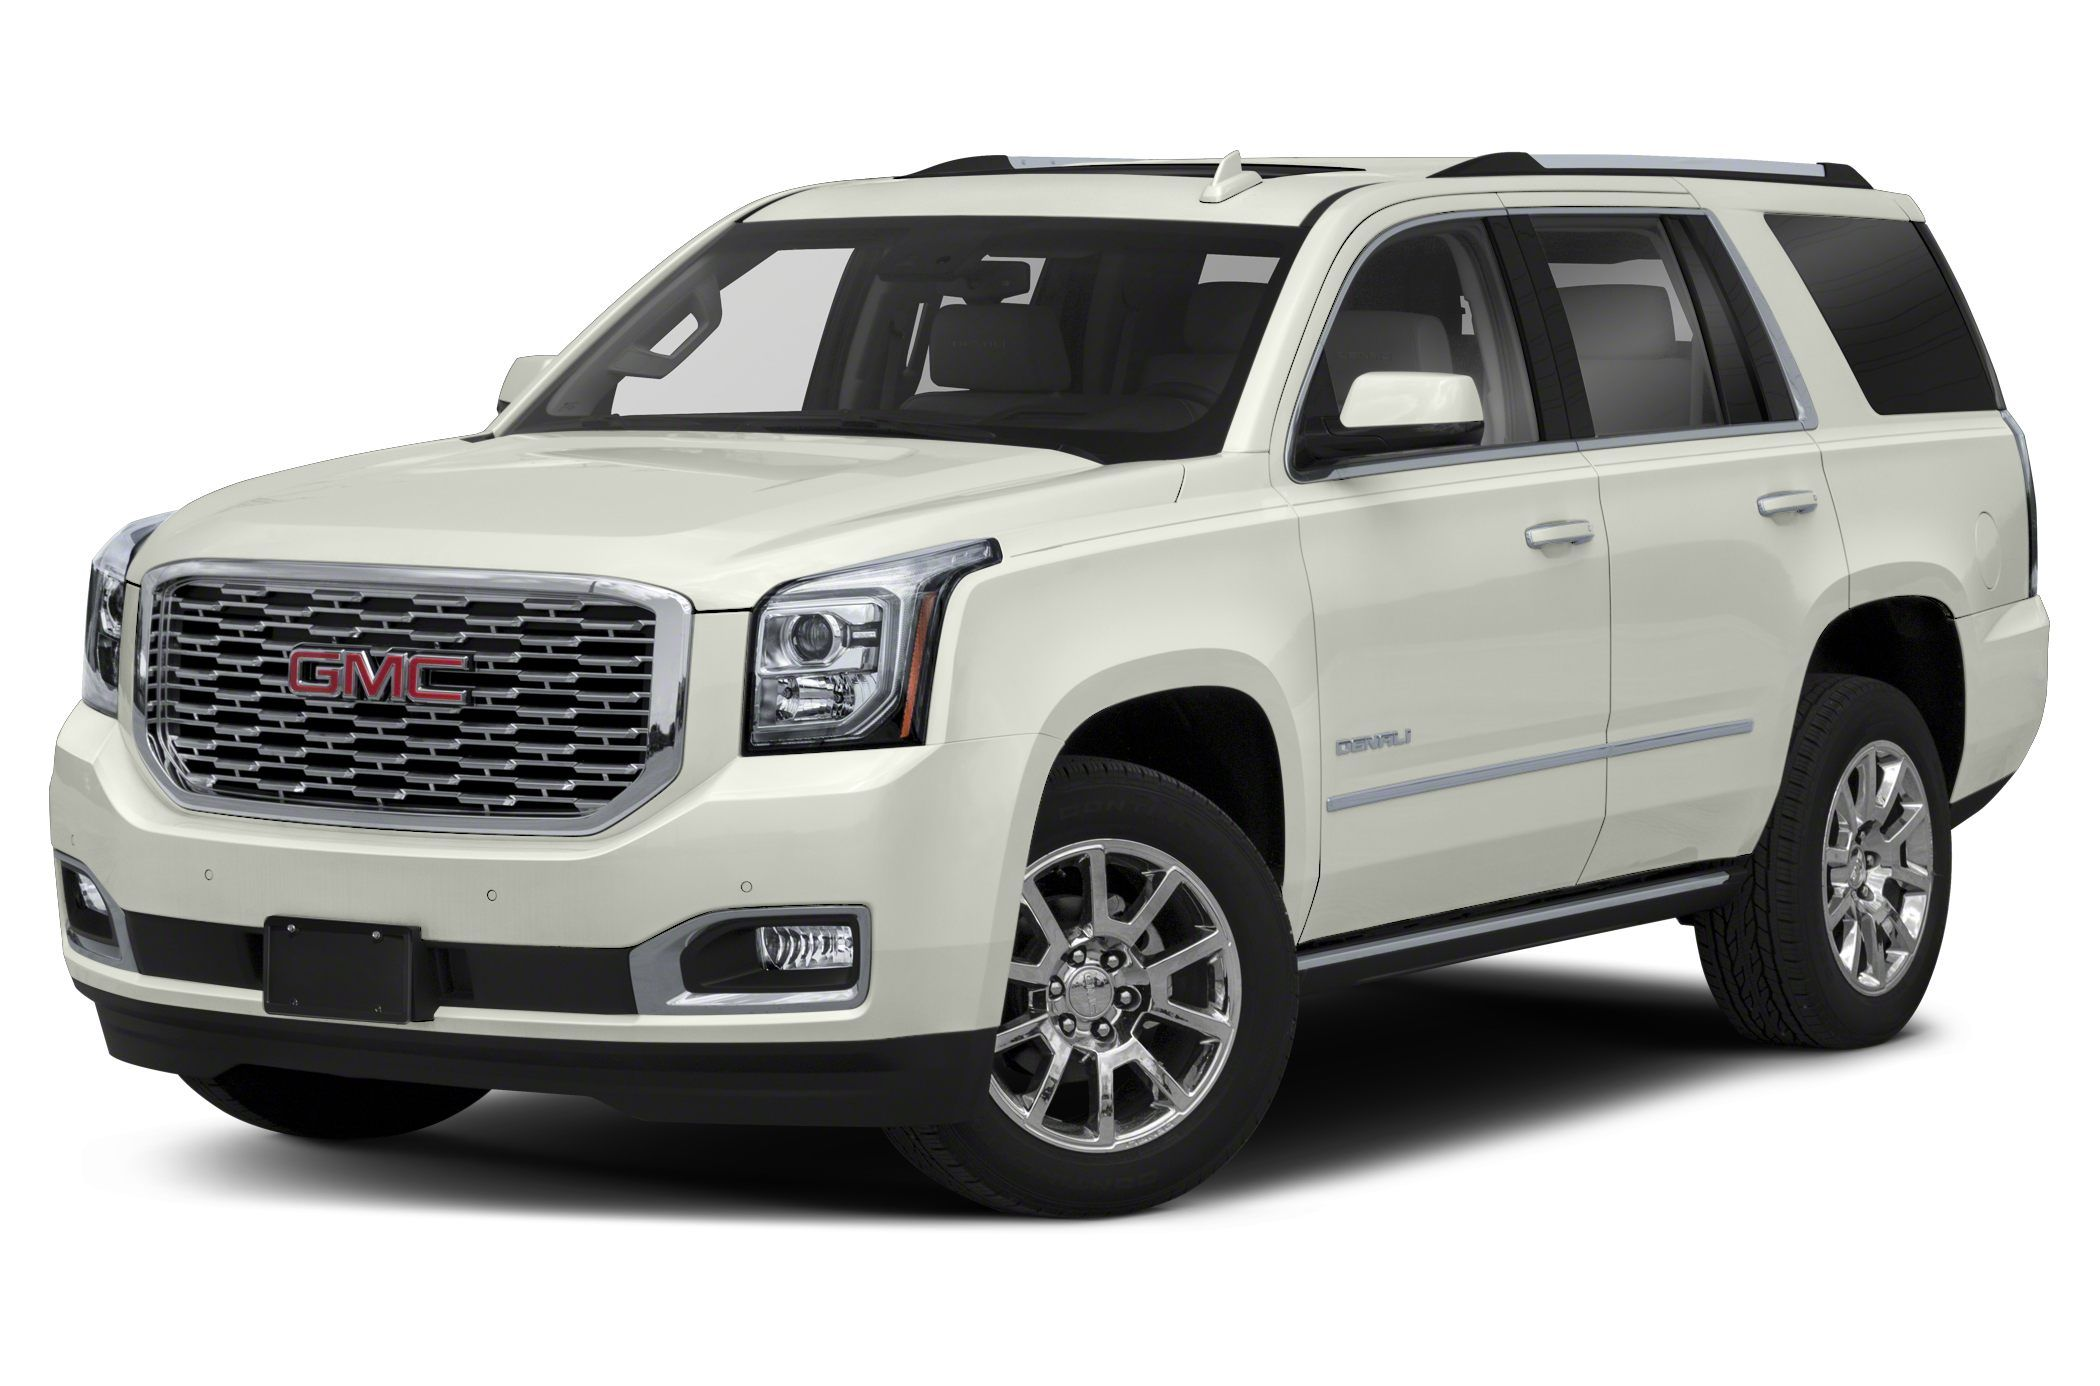 Gmc Denali Yukon 2020 Review And Price Check More At Http Car Newmodels Net Gmc Denali Yukon 2020 Di 2020